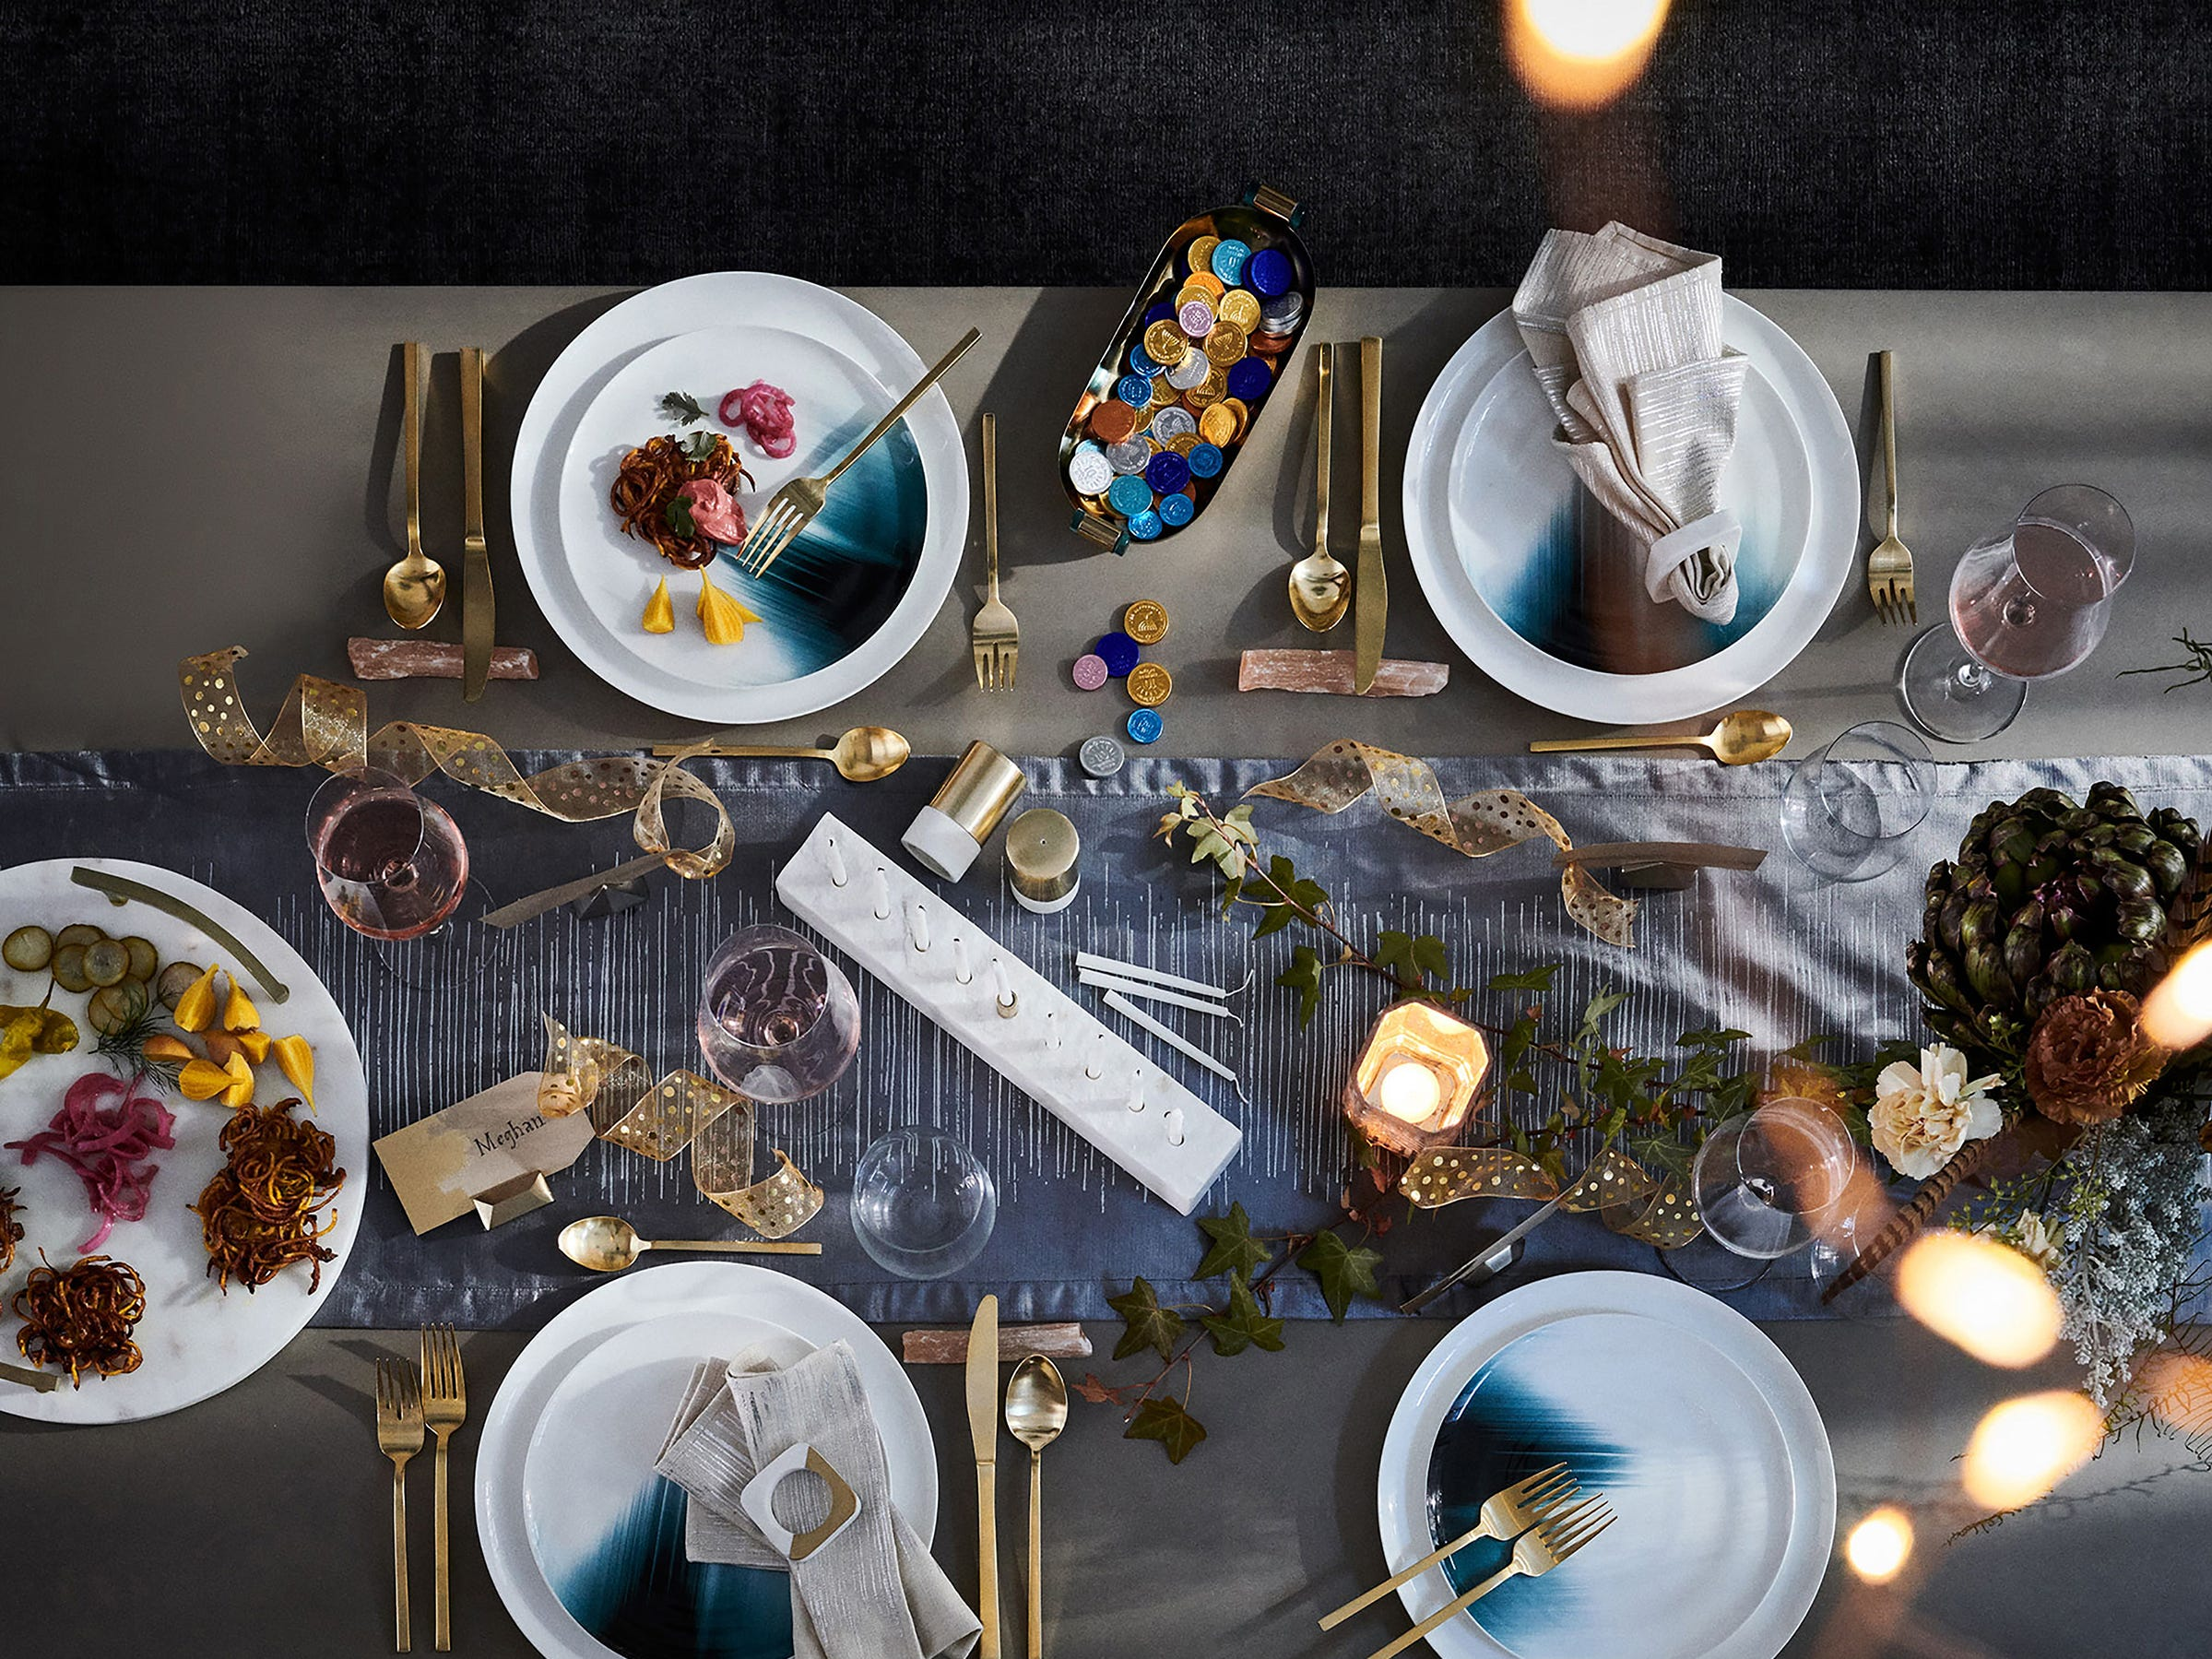 A fresh take on the Hanukkah table shows artistic plates with asymmetrical patterns that look like they were just painted, from West Elm. Even the traditional coins (usually wrapped in gold and silver) show up in unexpected foil wraps. And the 13-inch-long menorah itself has a modern look. A lustrous pewter velvet runner printed with metallic lines adds a luxe note.